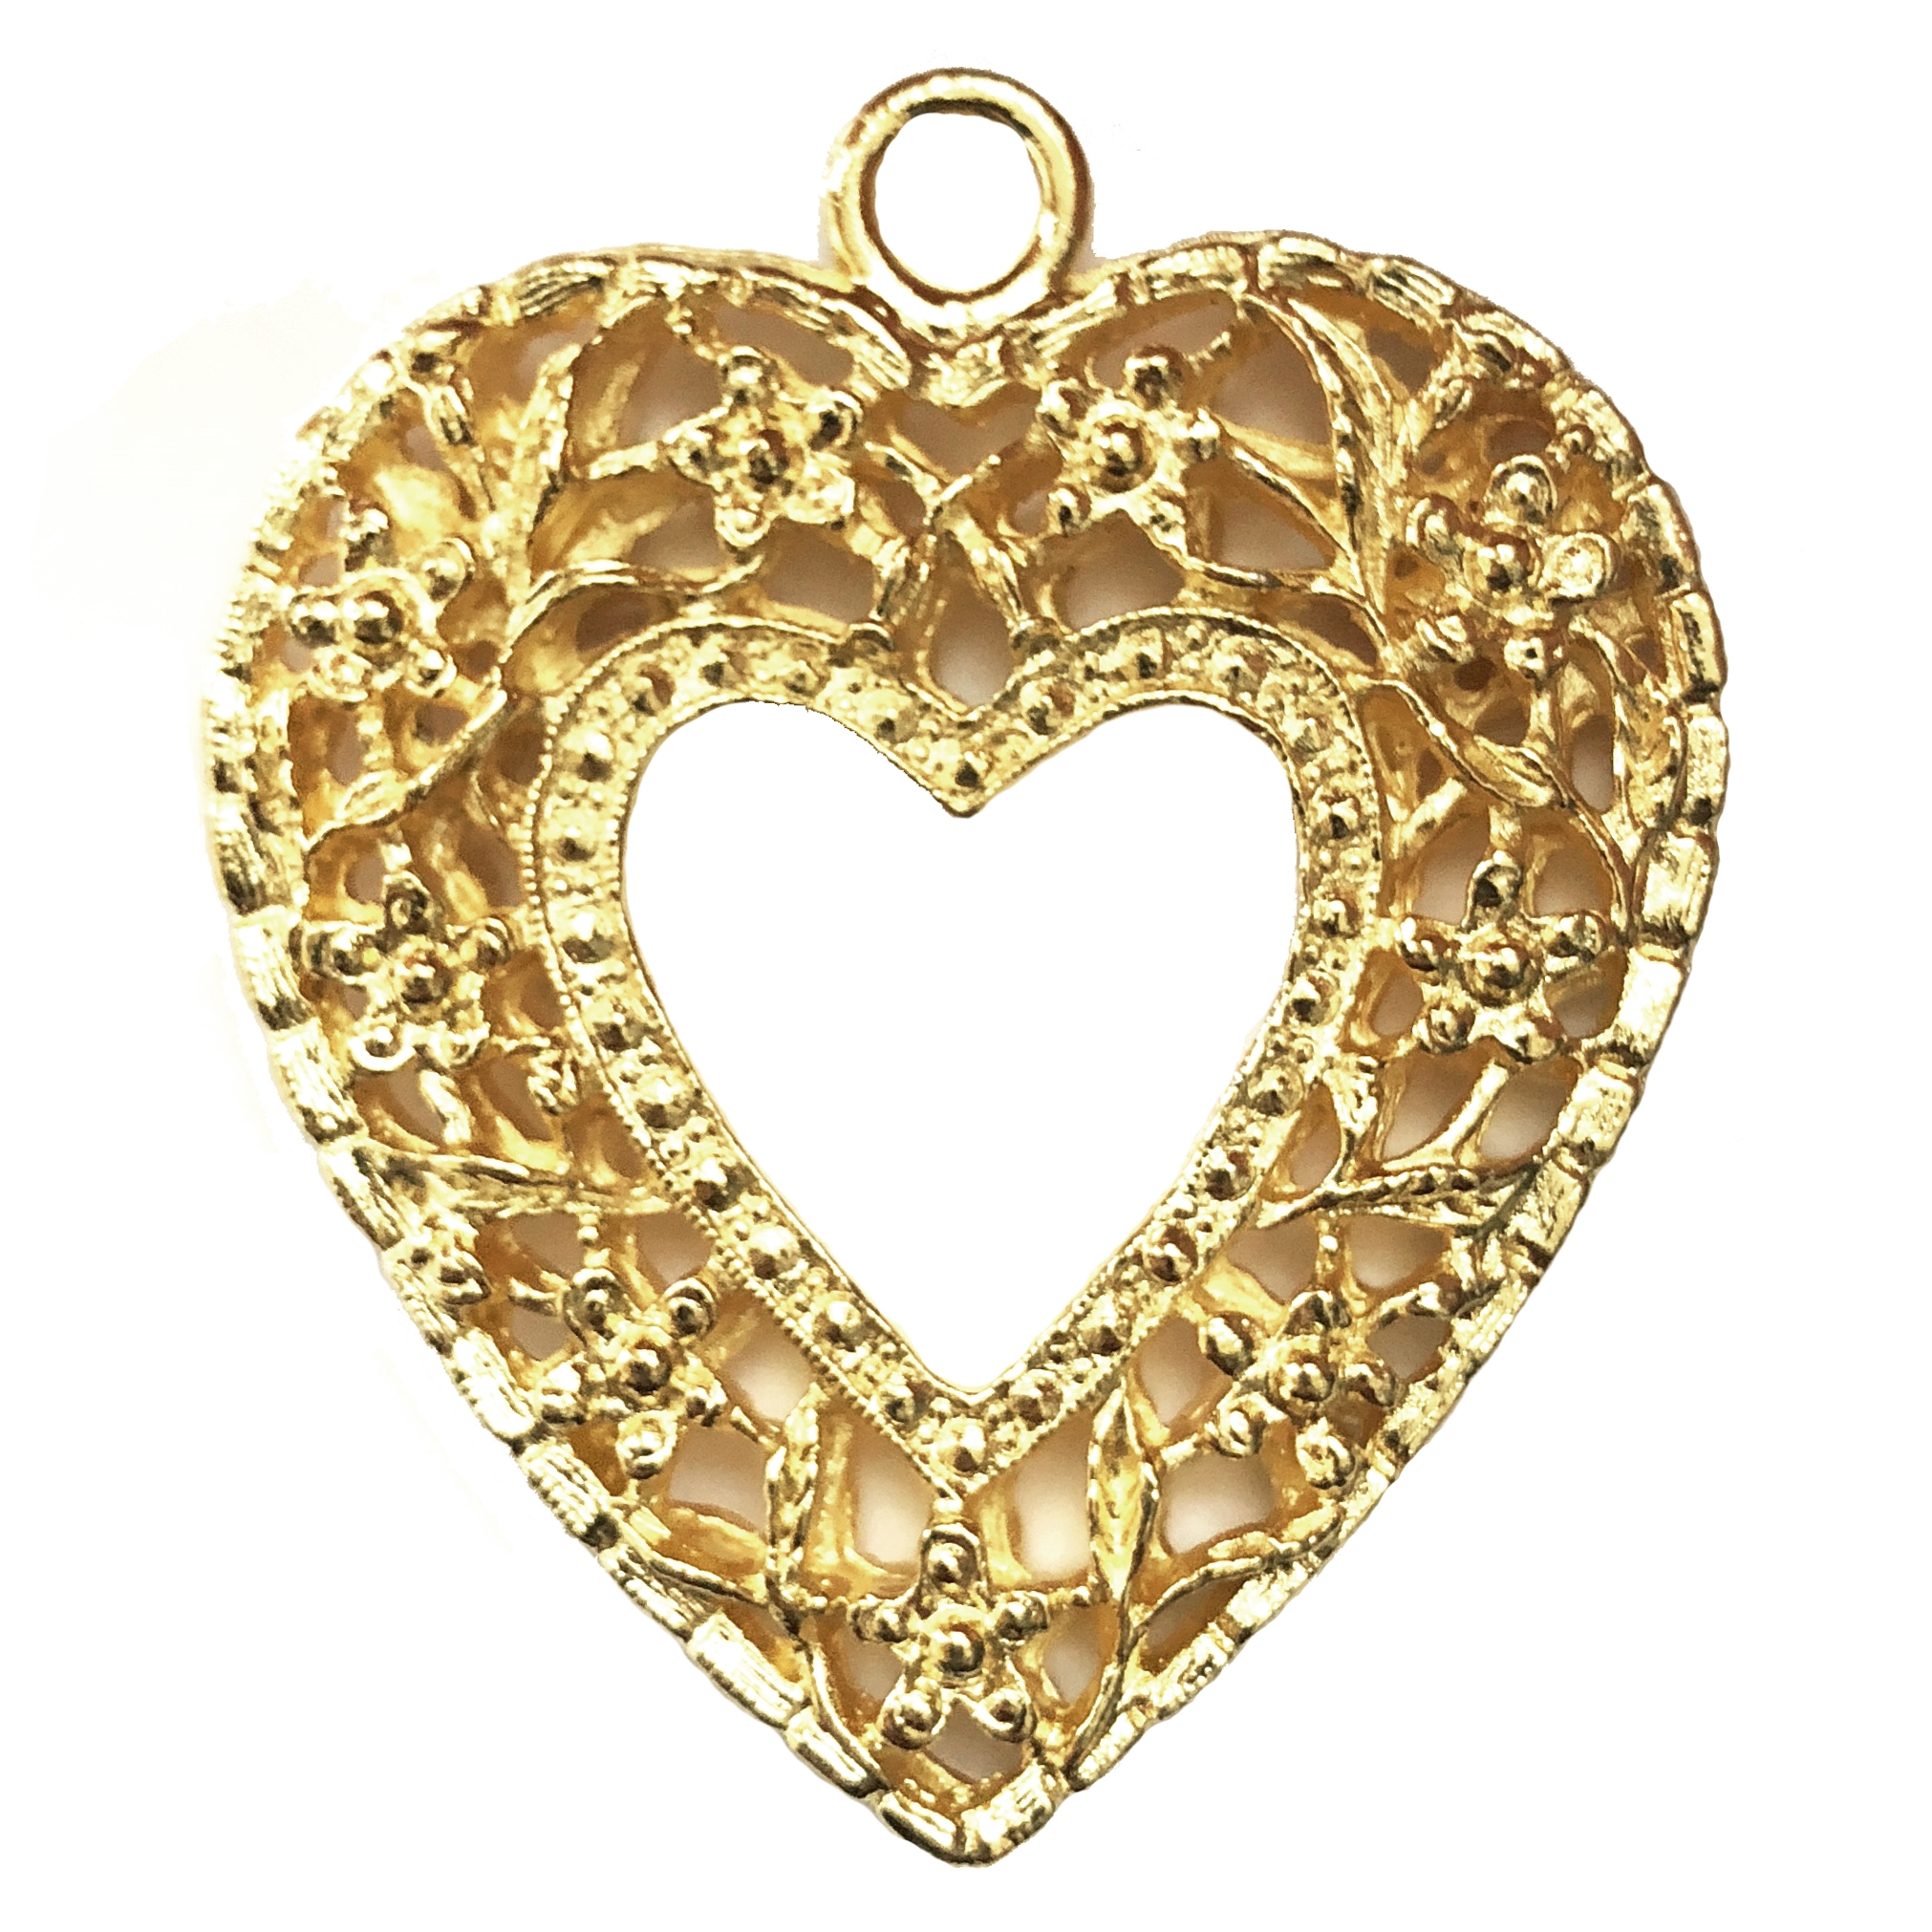 large floral heart pendant, 22K gold finish pewter, B'sue by 1928, jewelry pendant, heart pendant, floral heart, floral style, pendant, gold, lead free pewter, gold finish, US made, designer jewelry, vintage supplies, B'sue Boutiques, 45x42mm, 08512